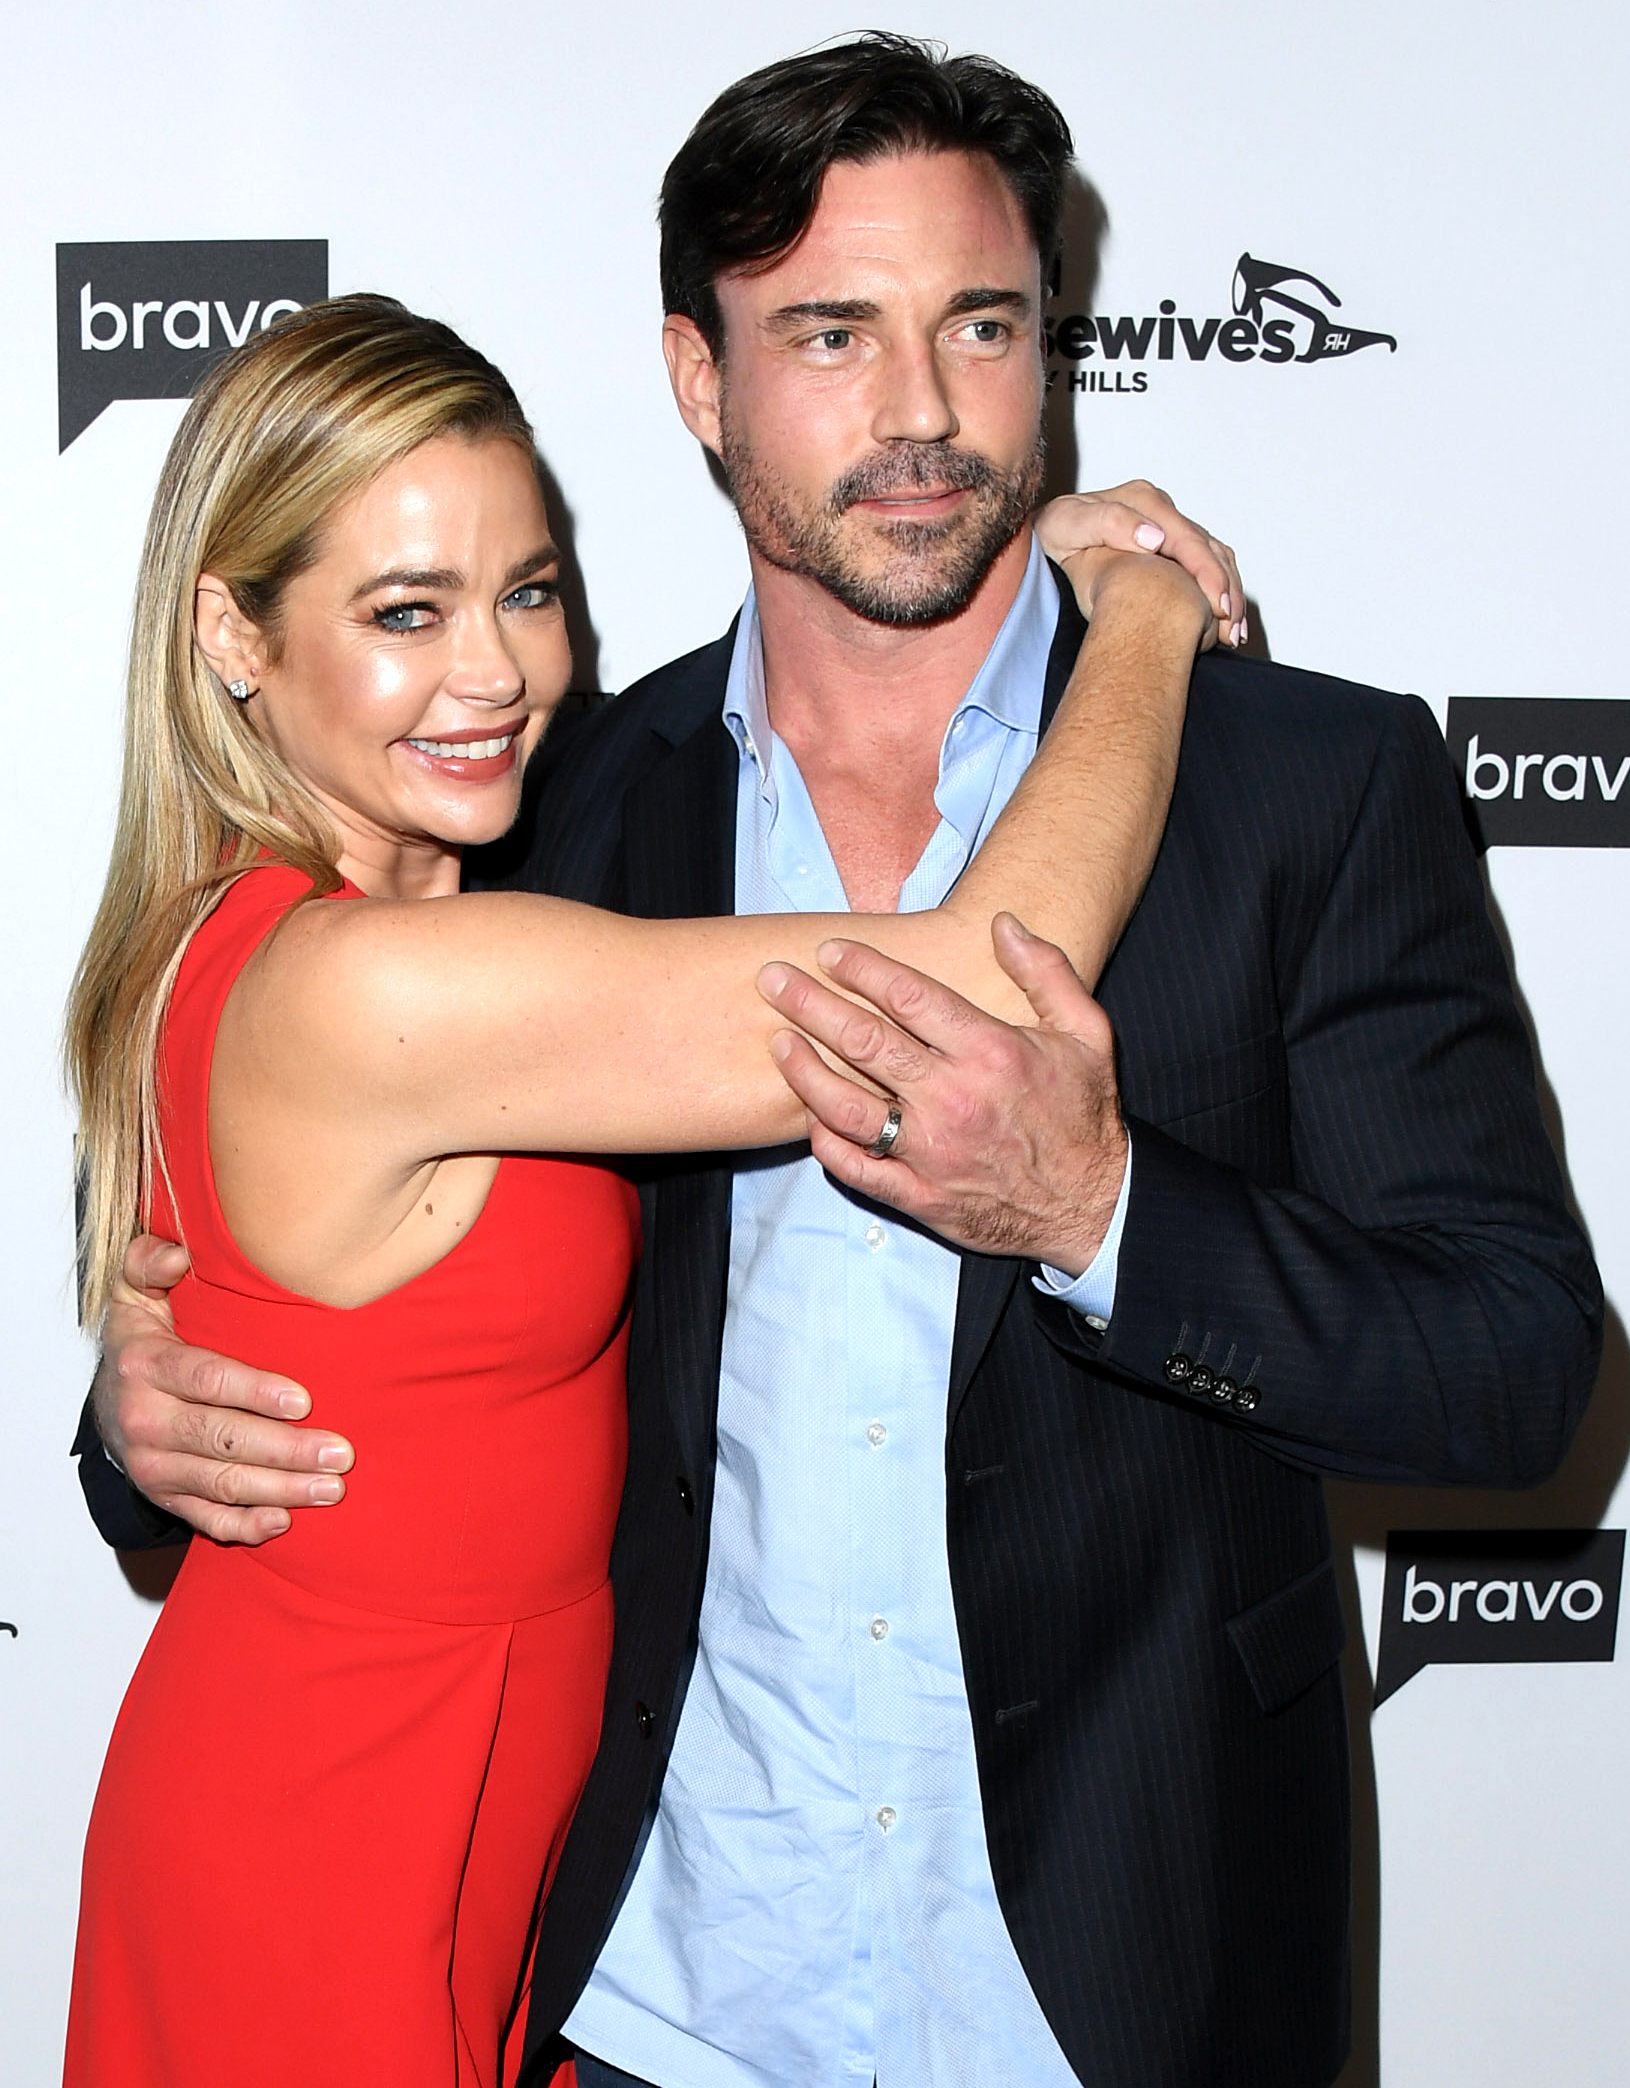 """Denise Richards Quotes About Husband Aaron Phypers - Richards was all too happy to brag about the fact that her man was packing below the belt to castmates Lisa Vanderpump and Kyle Richards during the March 12 episode of the Bravo hit. """"He offers a very good service, aside from his big penis. He has a very big penis,"""" she said."""